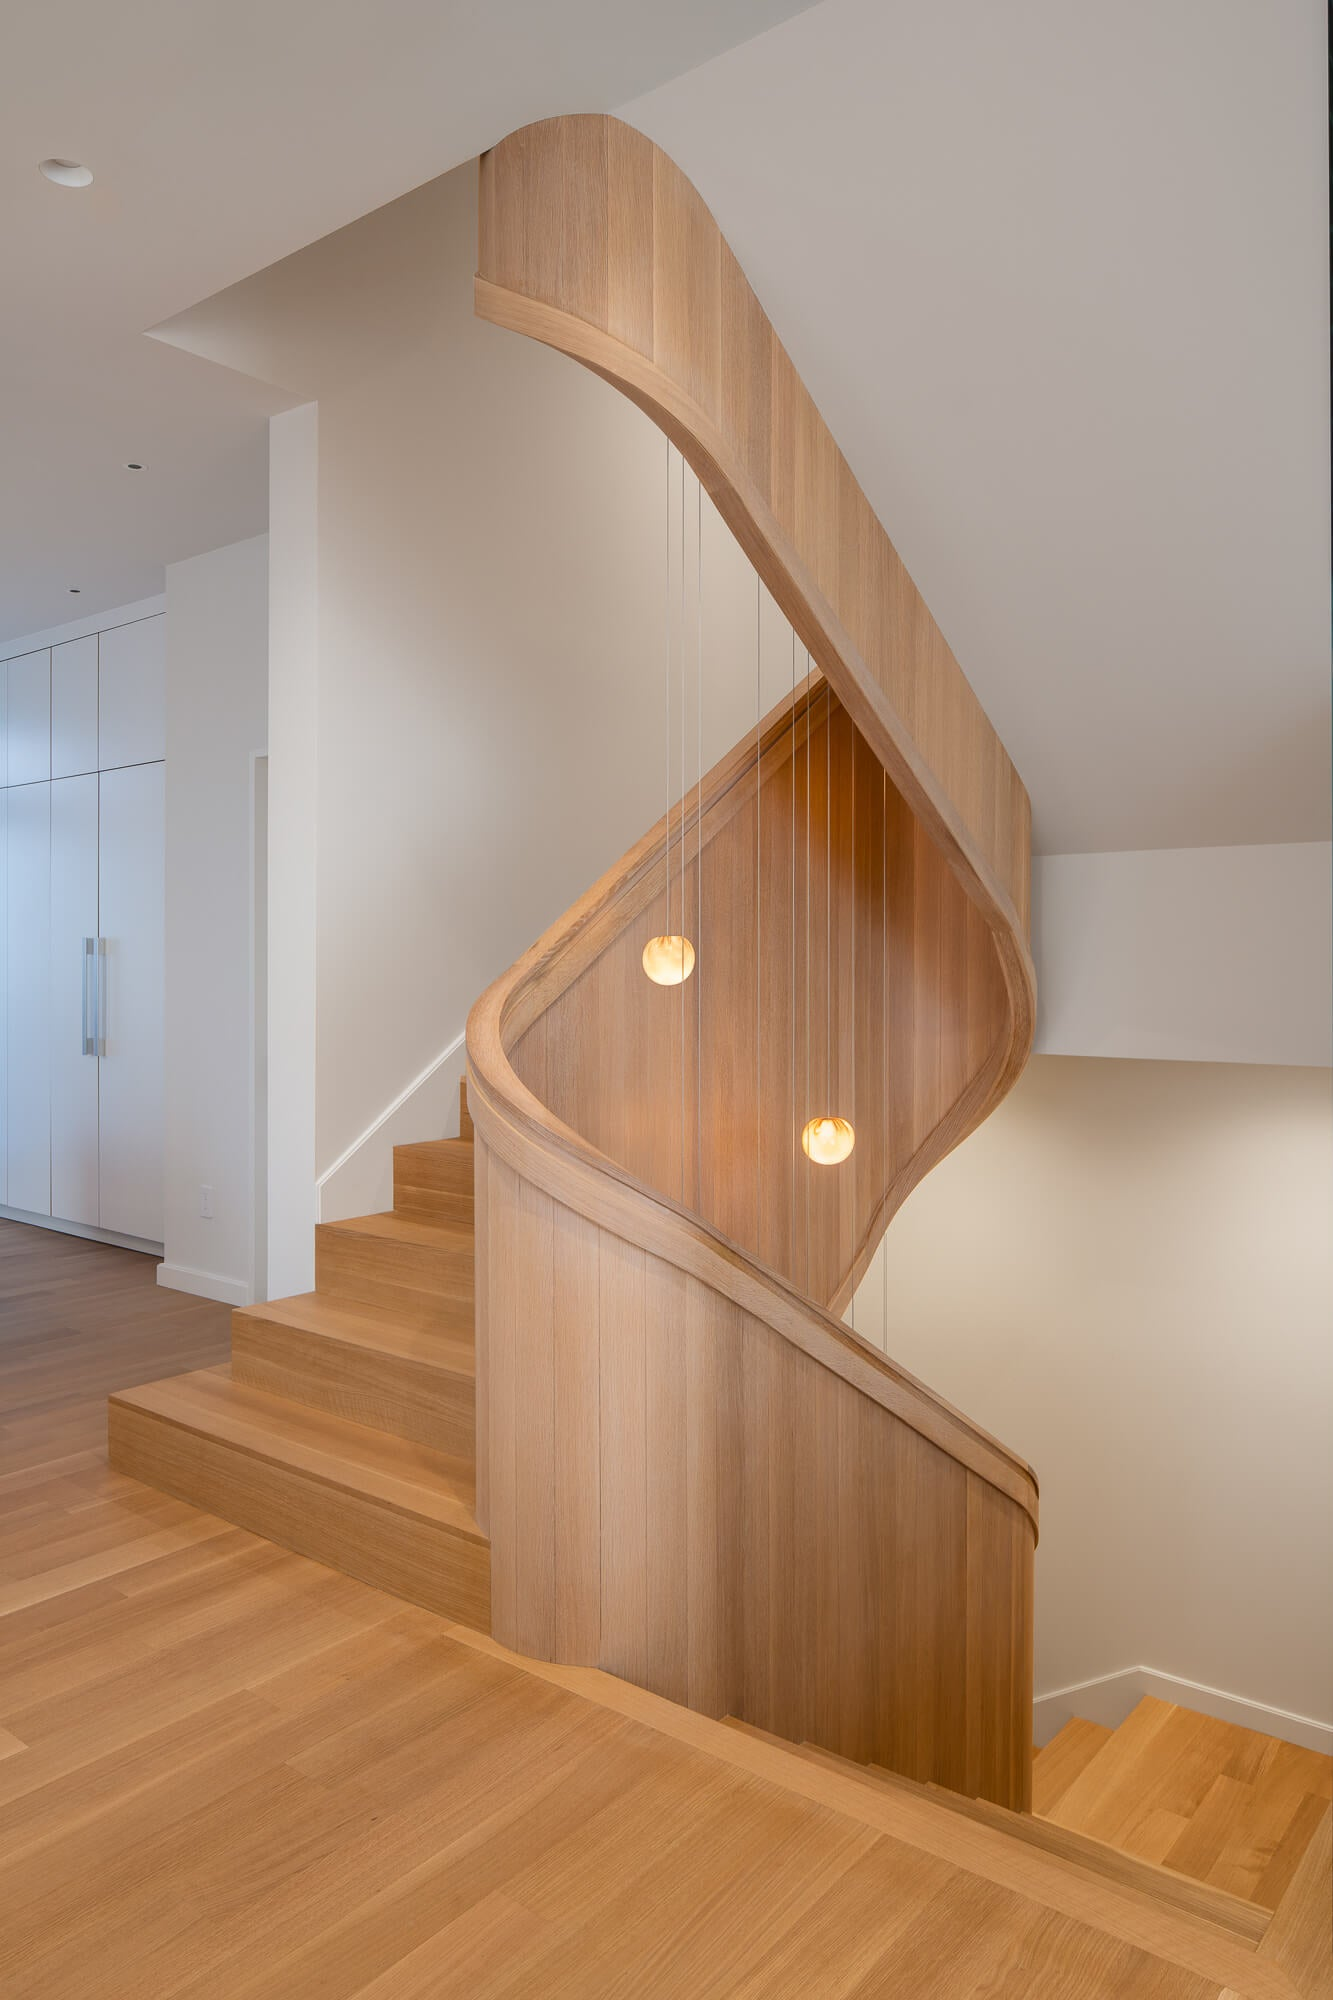 Rift sawn white oak staircase finished with a natural oil wood finish.